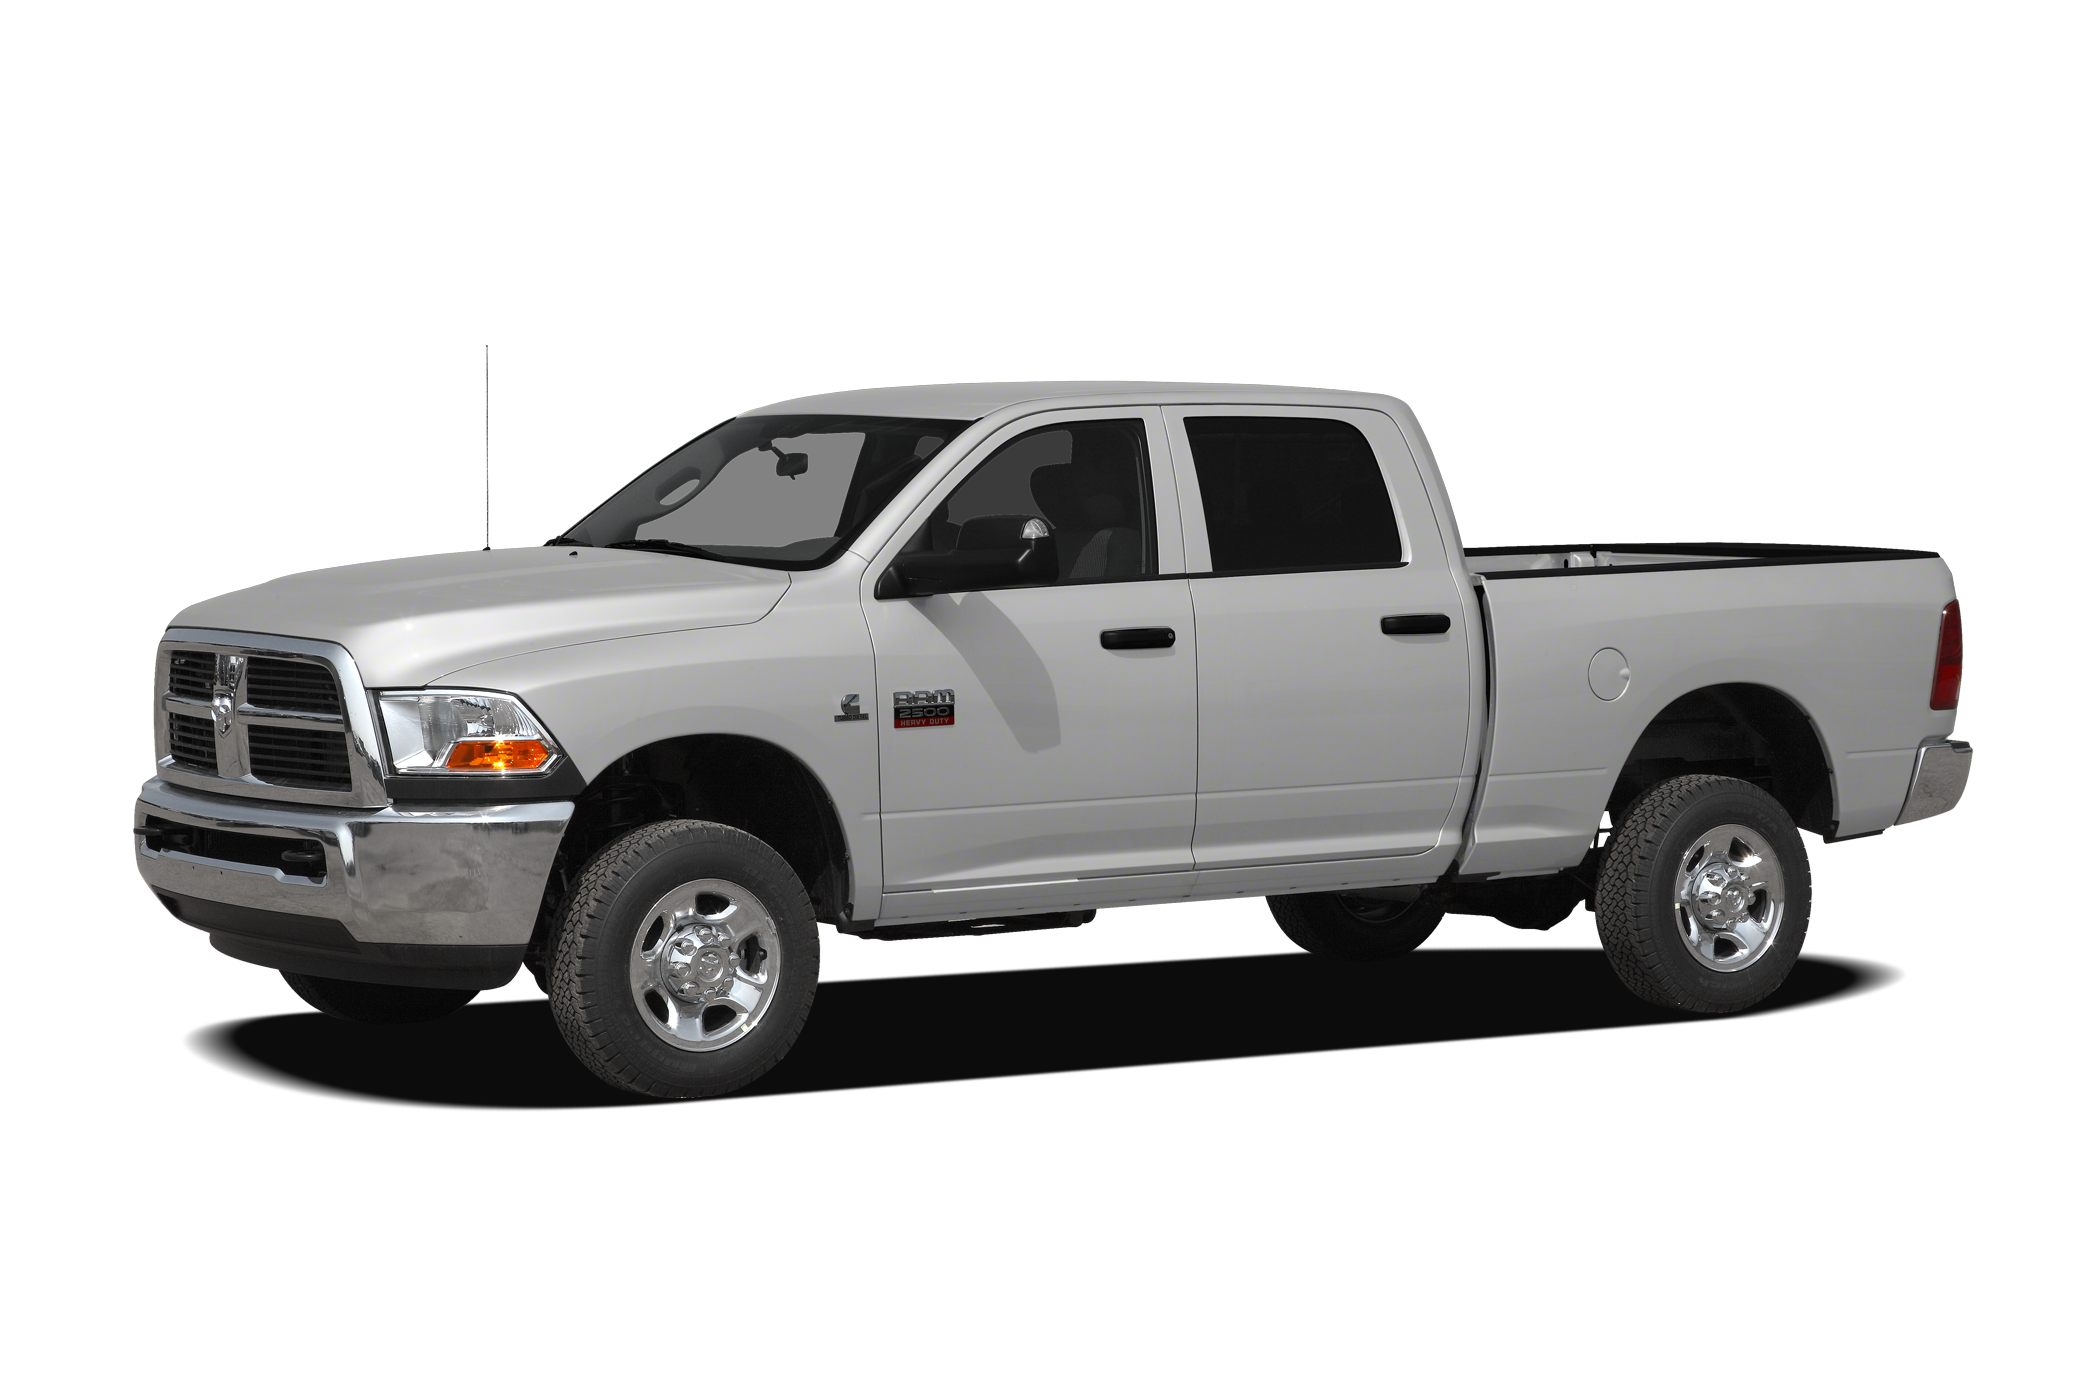 2011 Dodge Ram 2500 St 4x4 Crew Cab 149 In Wb Specs And Prices